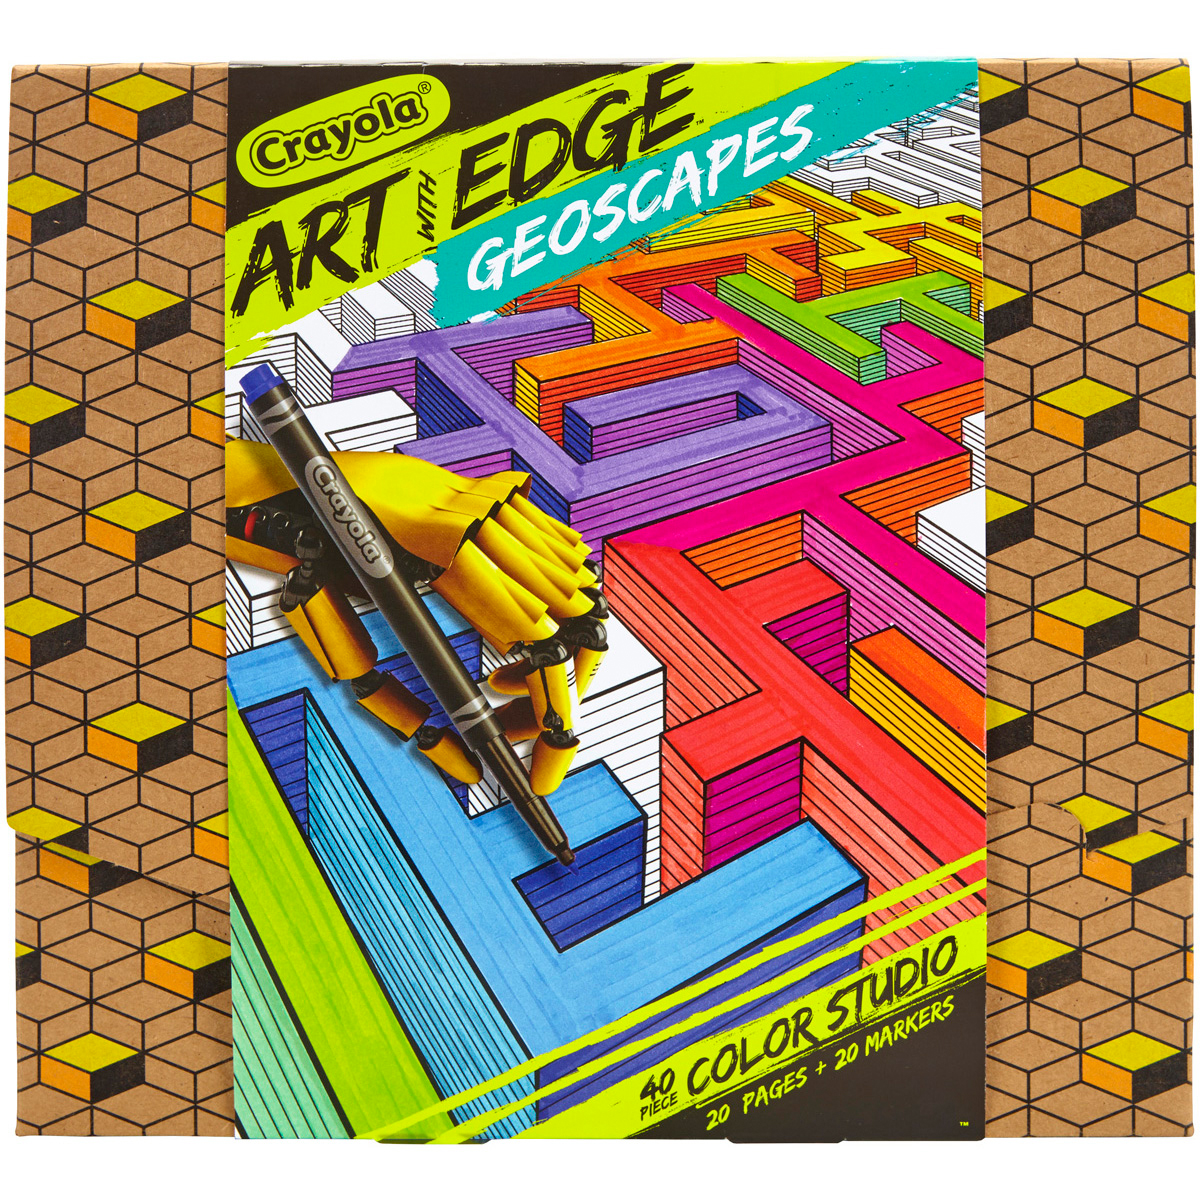 Crayola Art with Edge Geoscapes Coloring Kit, 40 Pieces